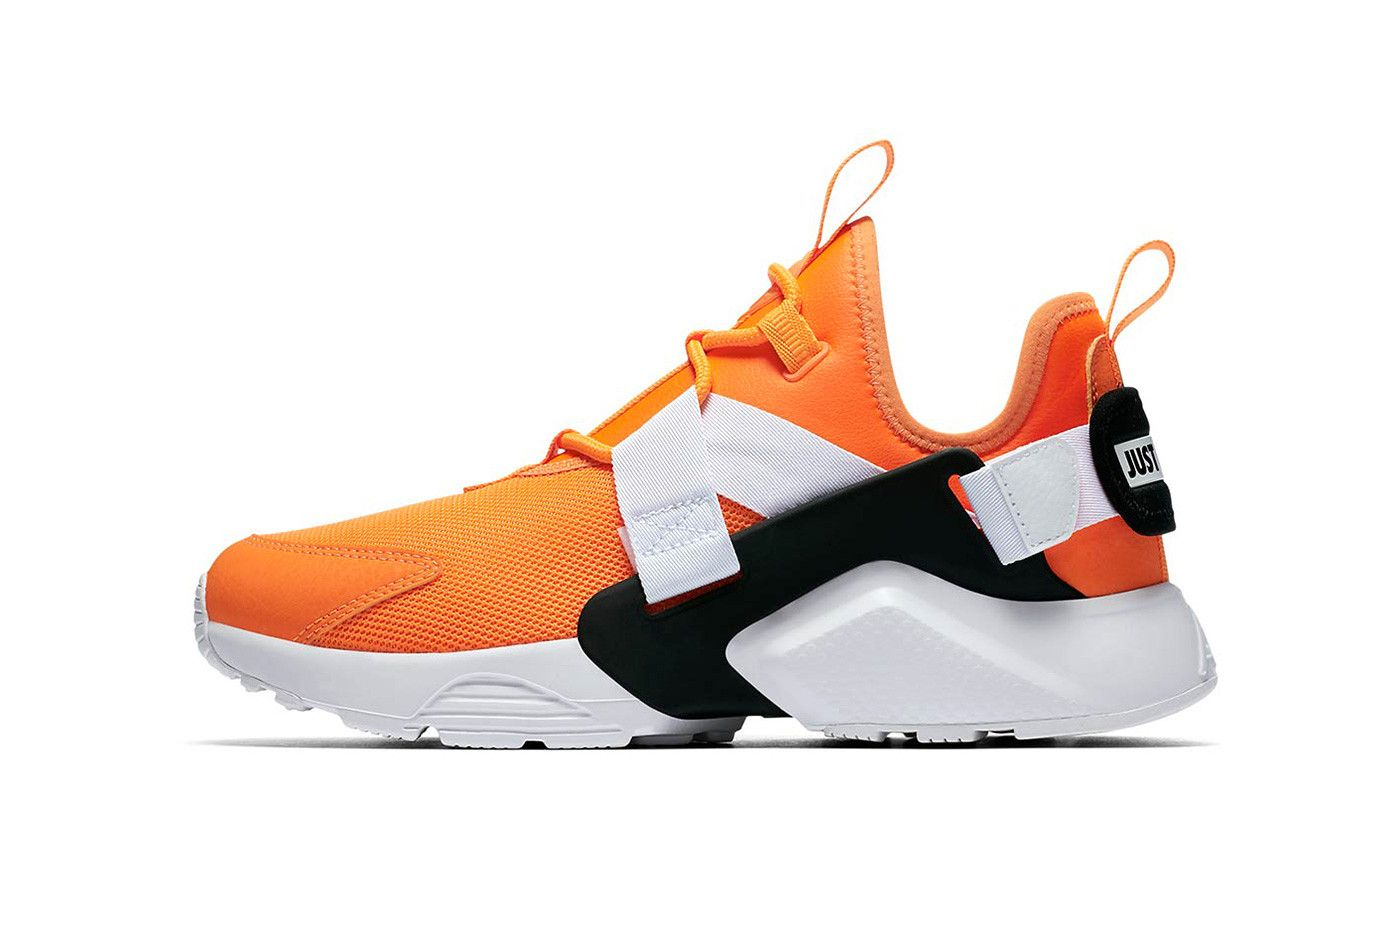 35f8d516724b8 Nike Huarache City low just do it collection orange white black nike  sportswear 2018 august footwear